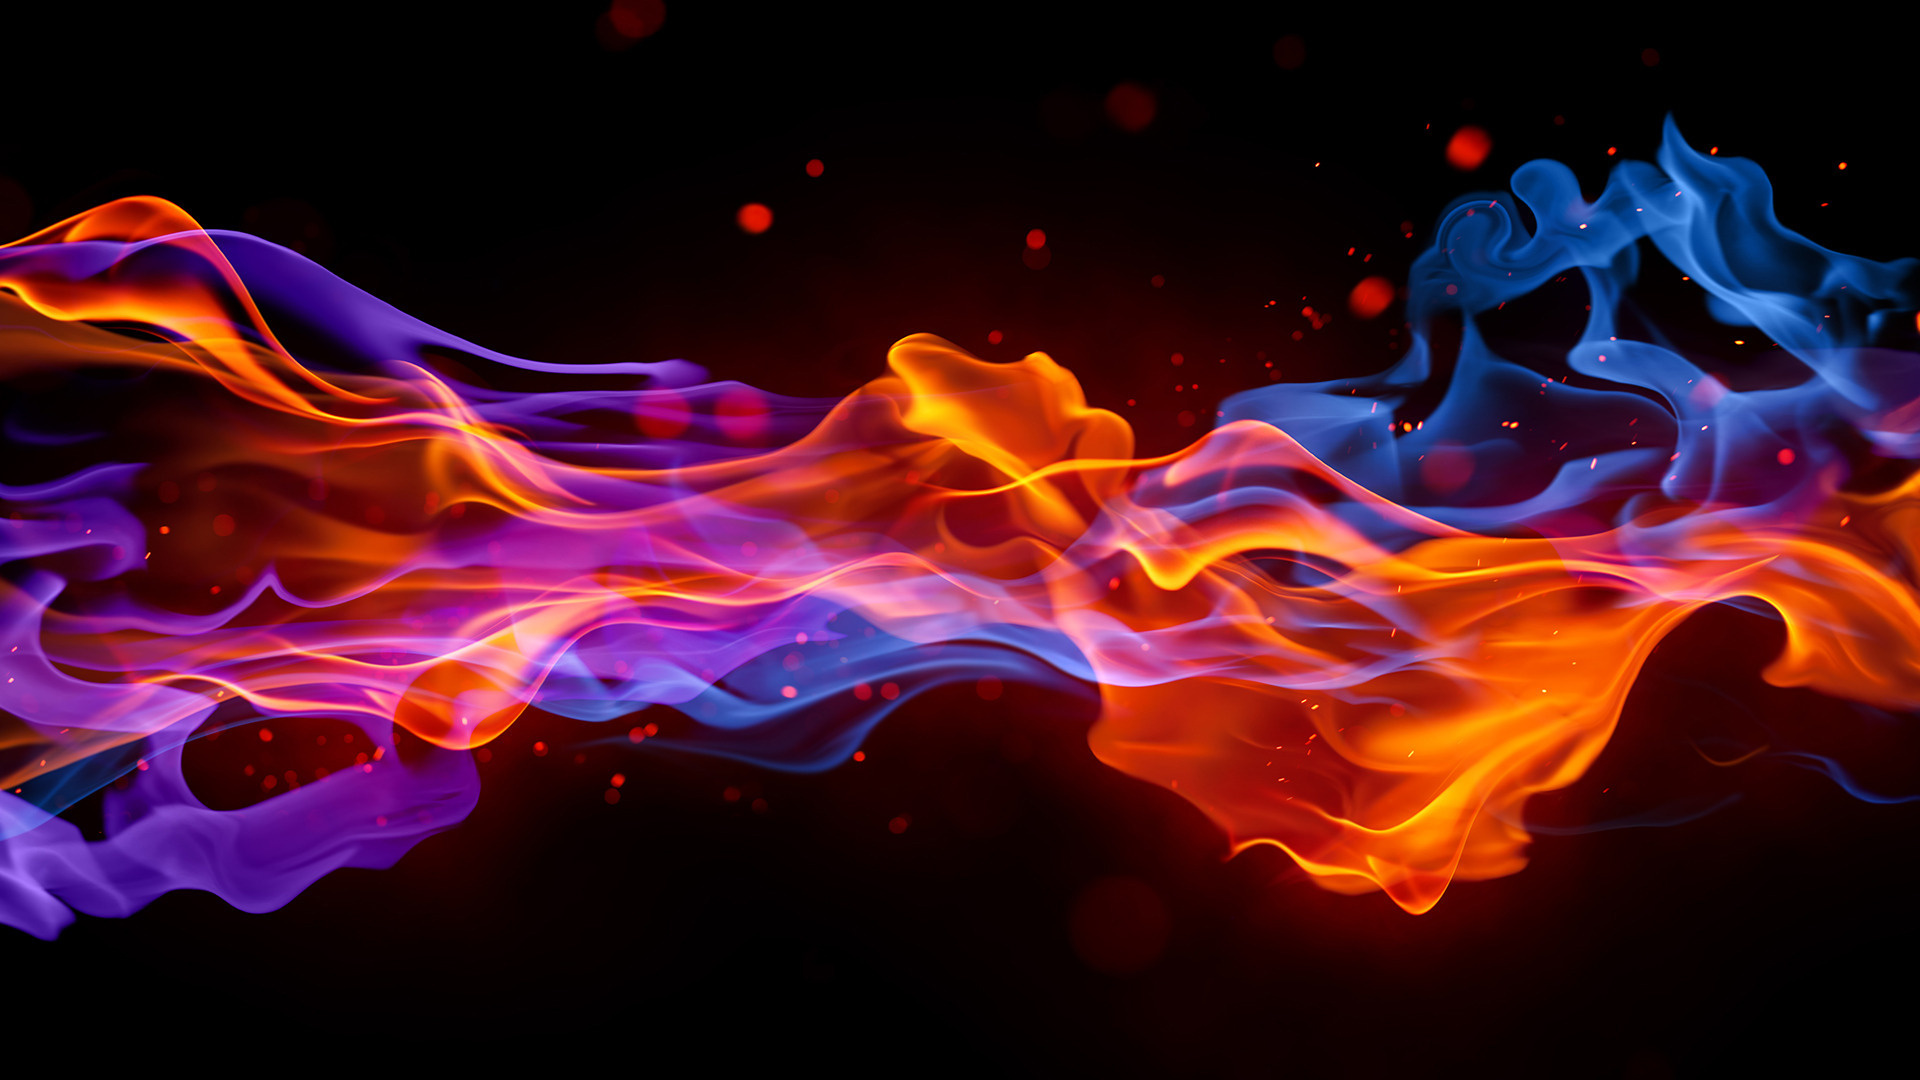 Free Fire Wallpaper: Technorockks: 47 Stunning Fire Wallpaper